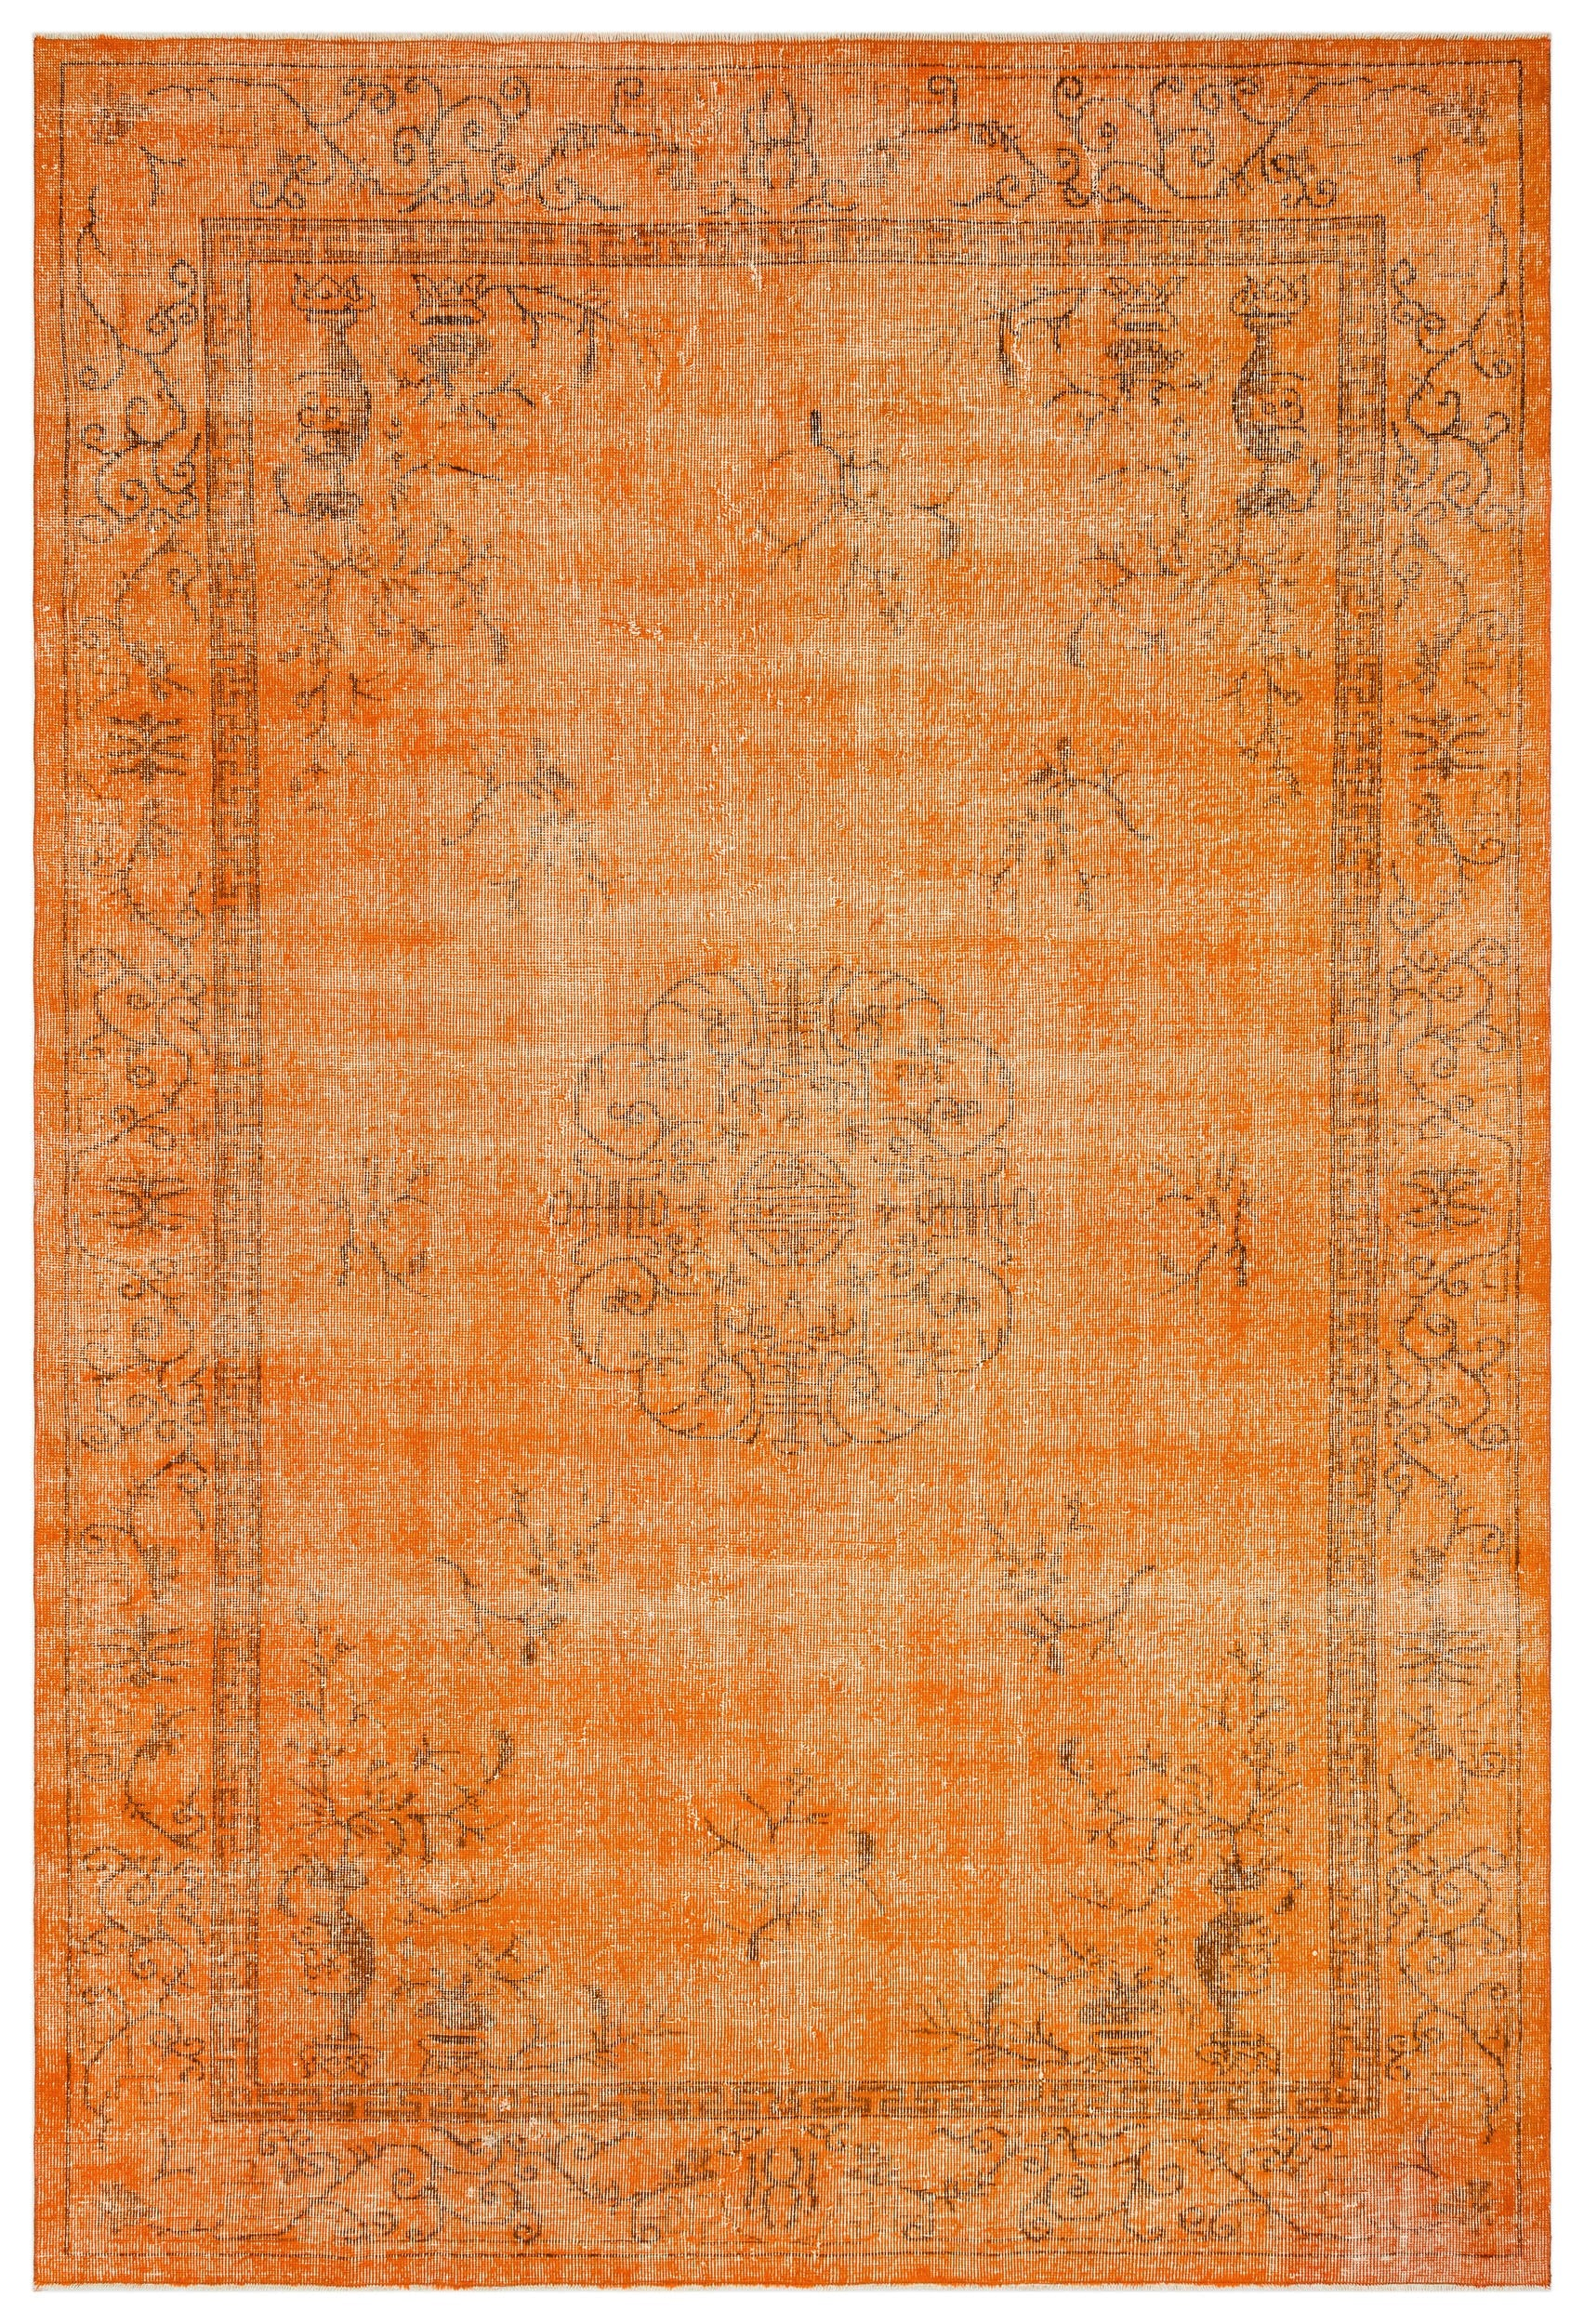 Orange Over Dyed Vintage Rug 7'2'' x 10'8'' ft 218 x 324 cm